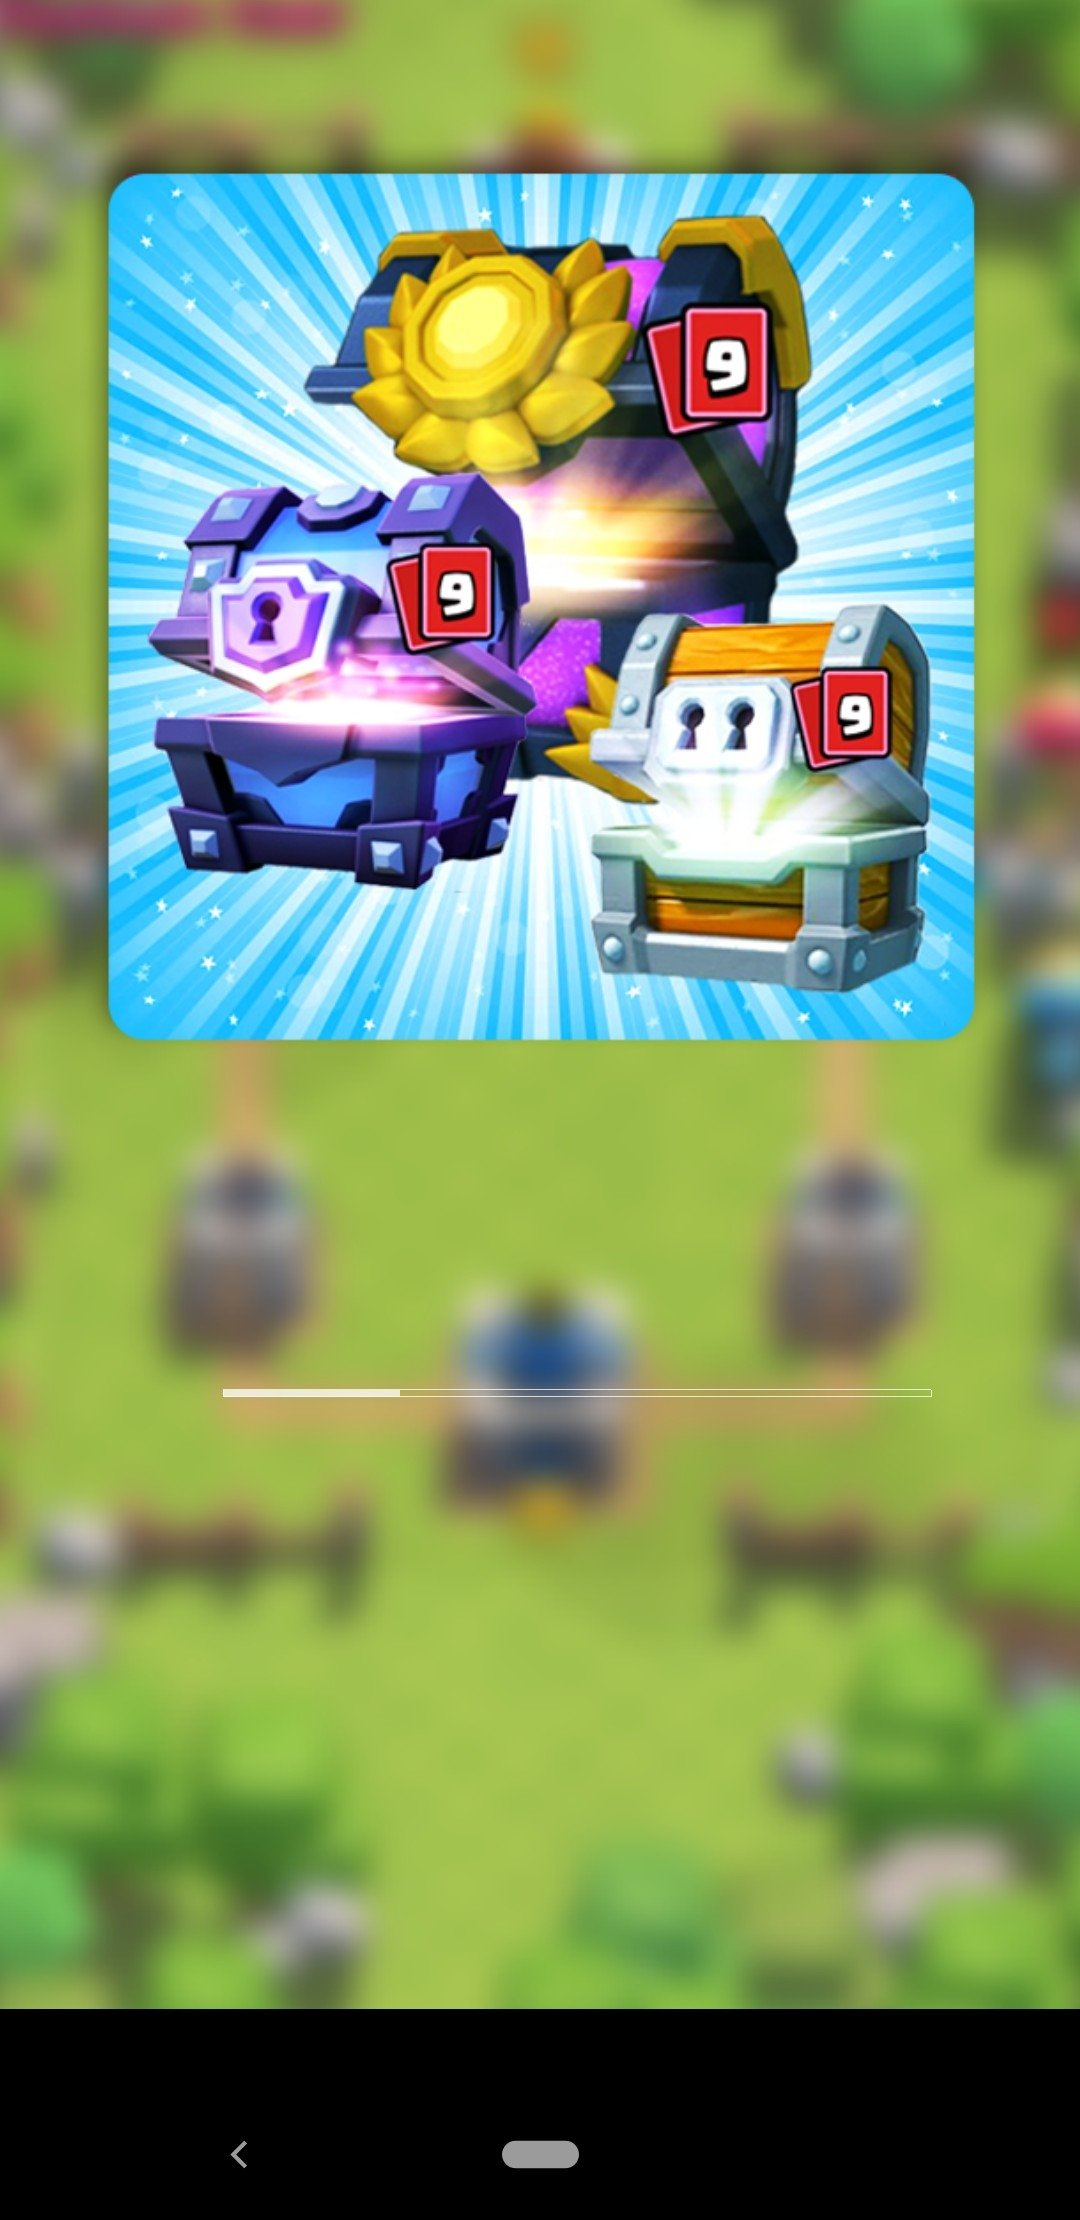 Gems for Clash Royale Prank Android image 5